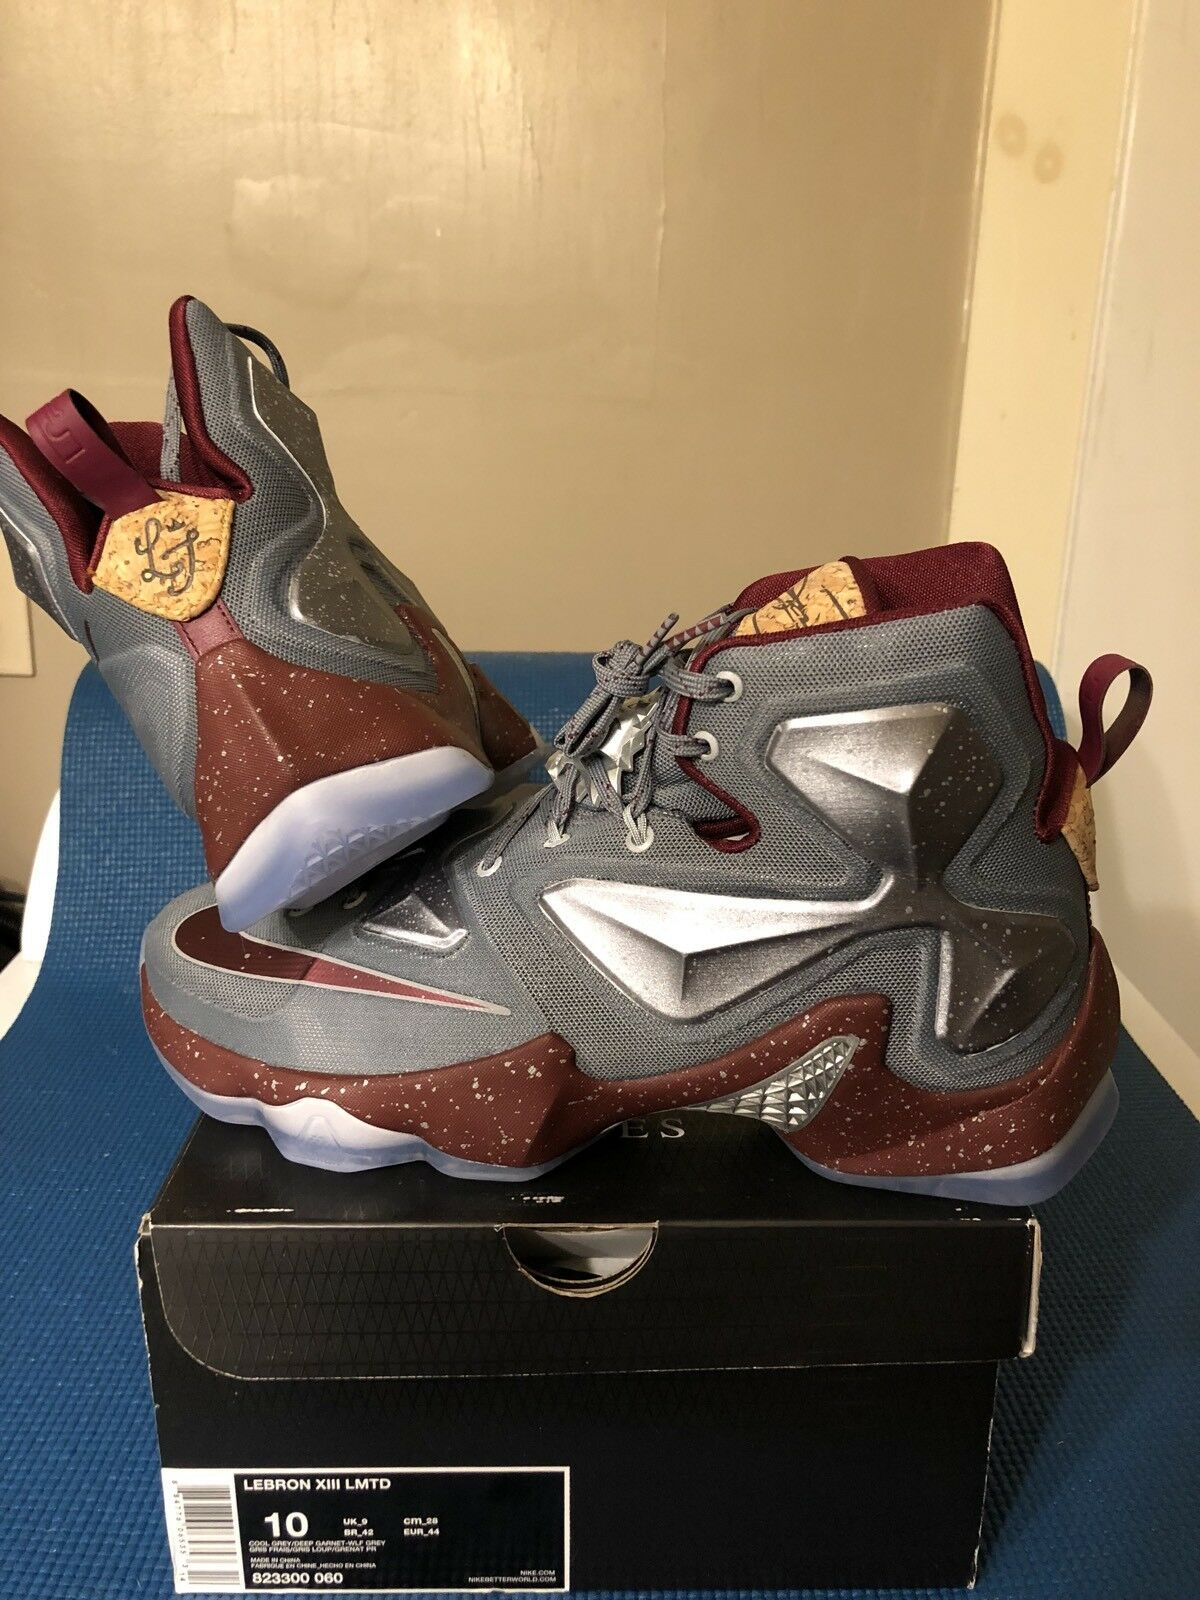 Lebron James Opening Night Nike XIII 13 Bordeaux Cork Stock Size 10 New Dead Stock Cork W/B ebb91d